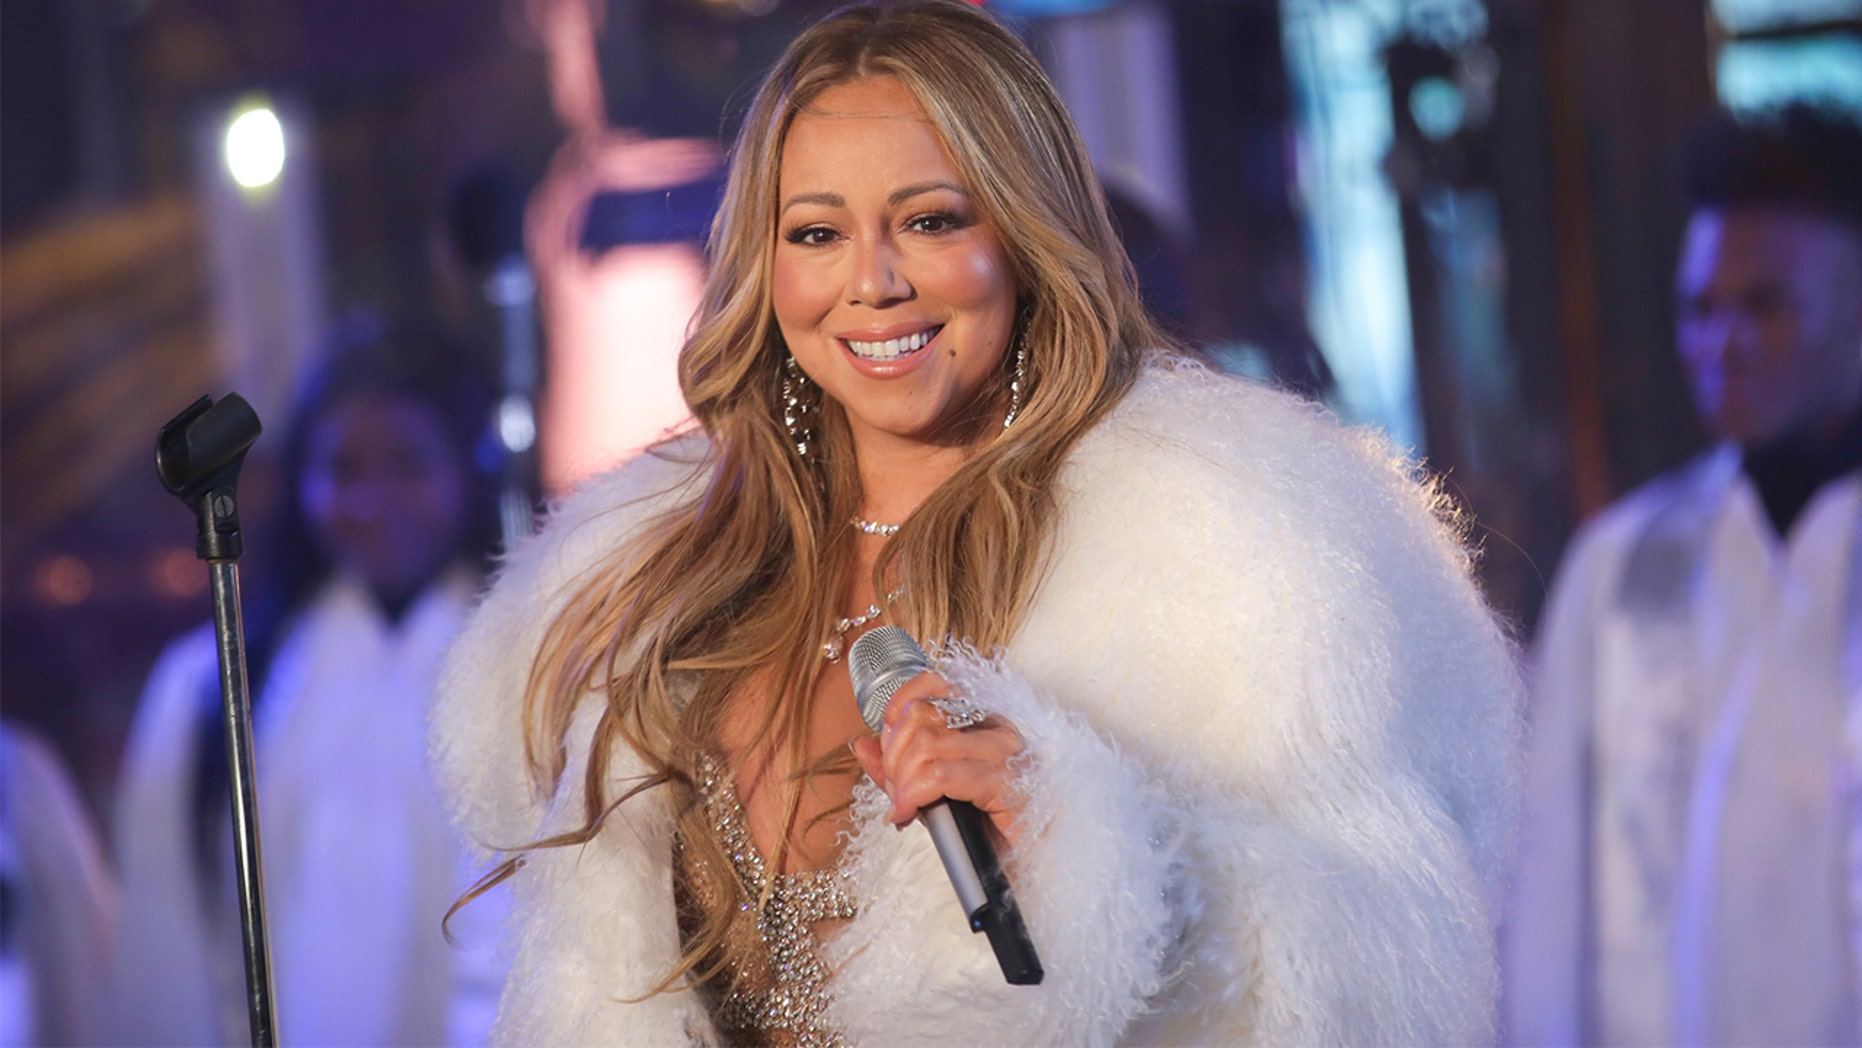 Mariah Carey opens up about living with bipolar disorder for the first time.